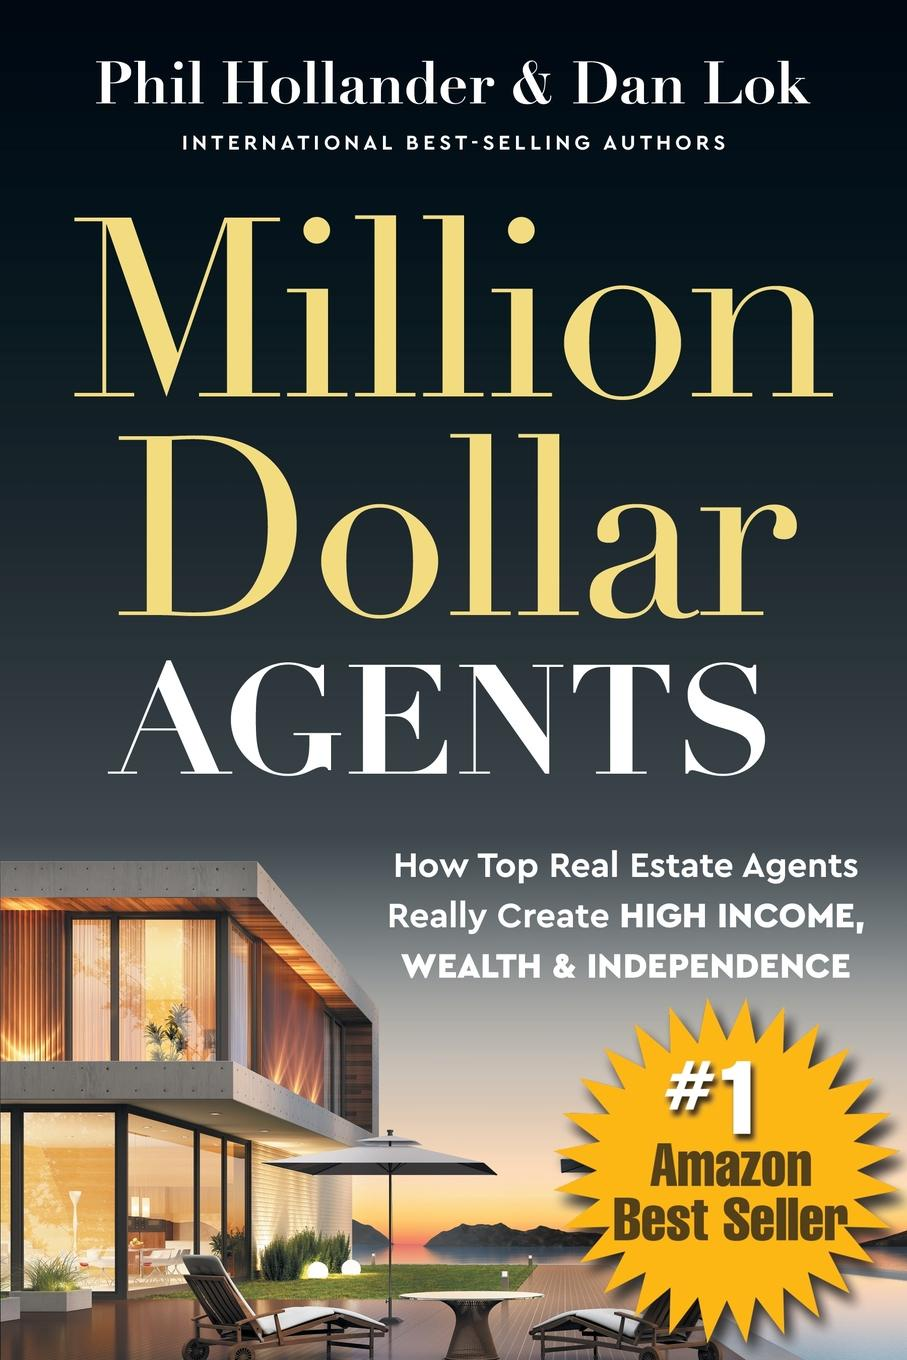 Phil Hollander, Dan Lok Million Dollar Agents. How Top Real Estate Agents Really Create HIGH INCOME, WEALTH . INDEPENDENCE